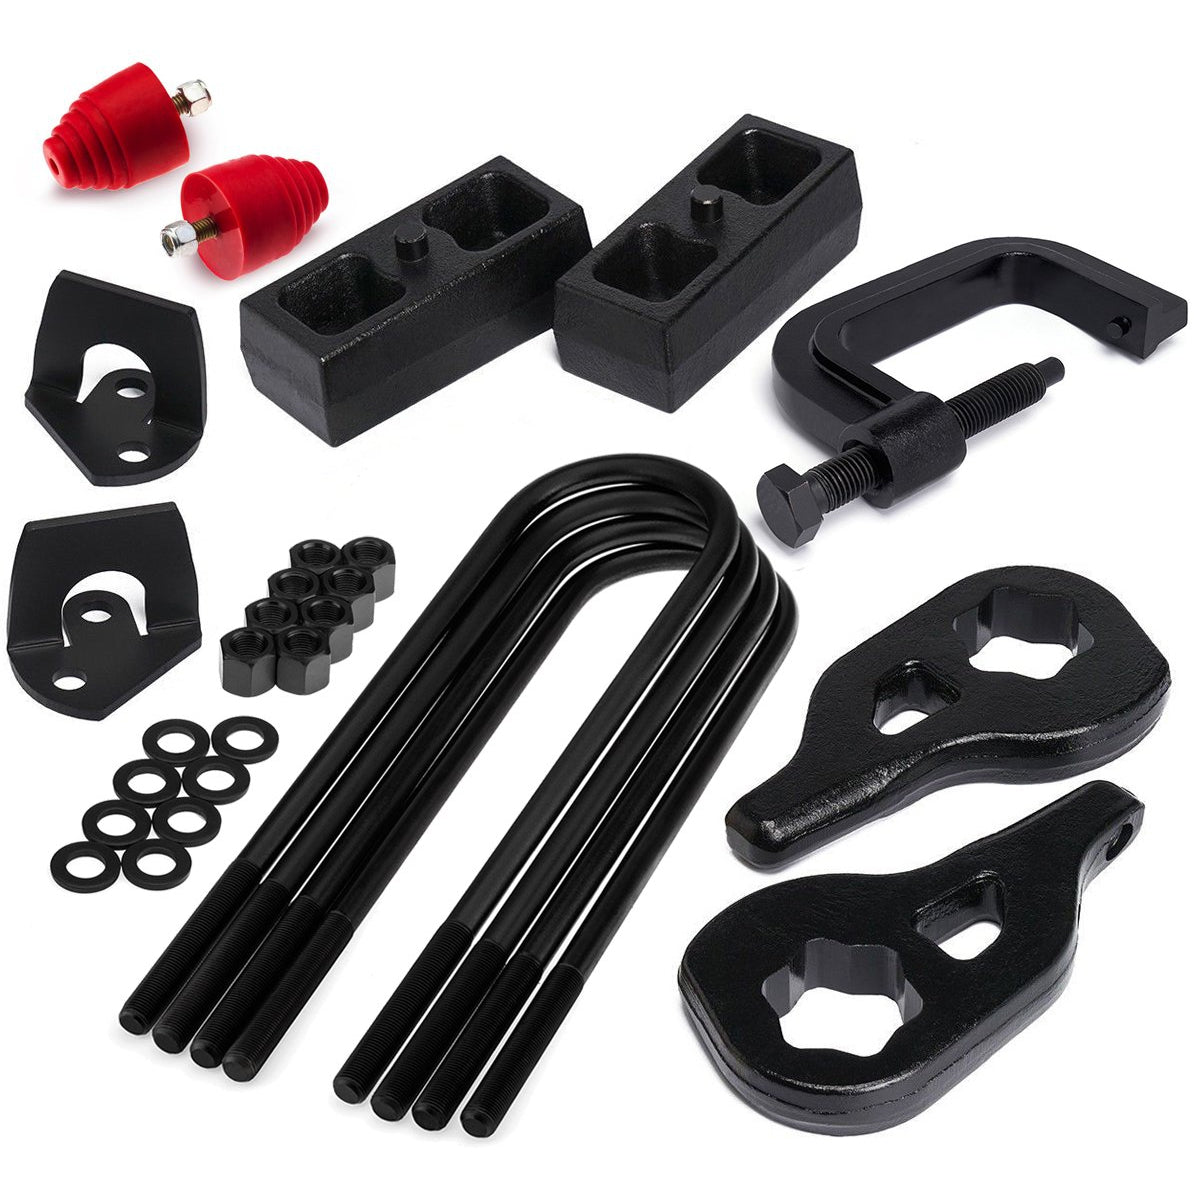 2002-2005 Dodge Ram 1500 Full Lift Kit with Shock Extensions Bump Stops and Torsion Key Unloading/Removal Tool